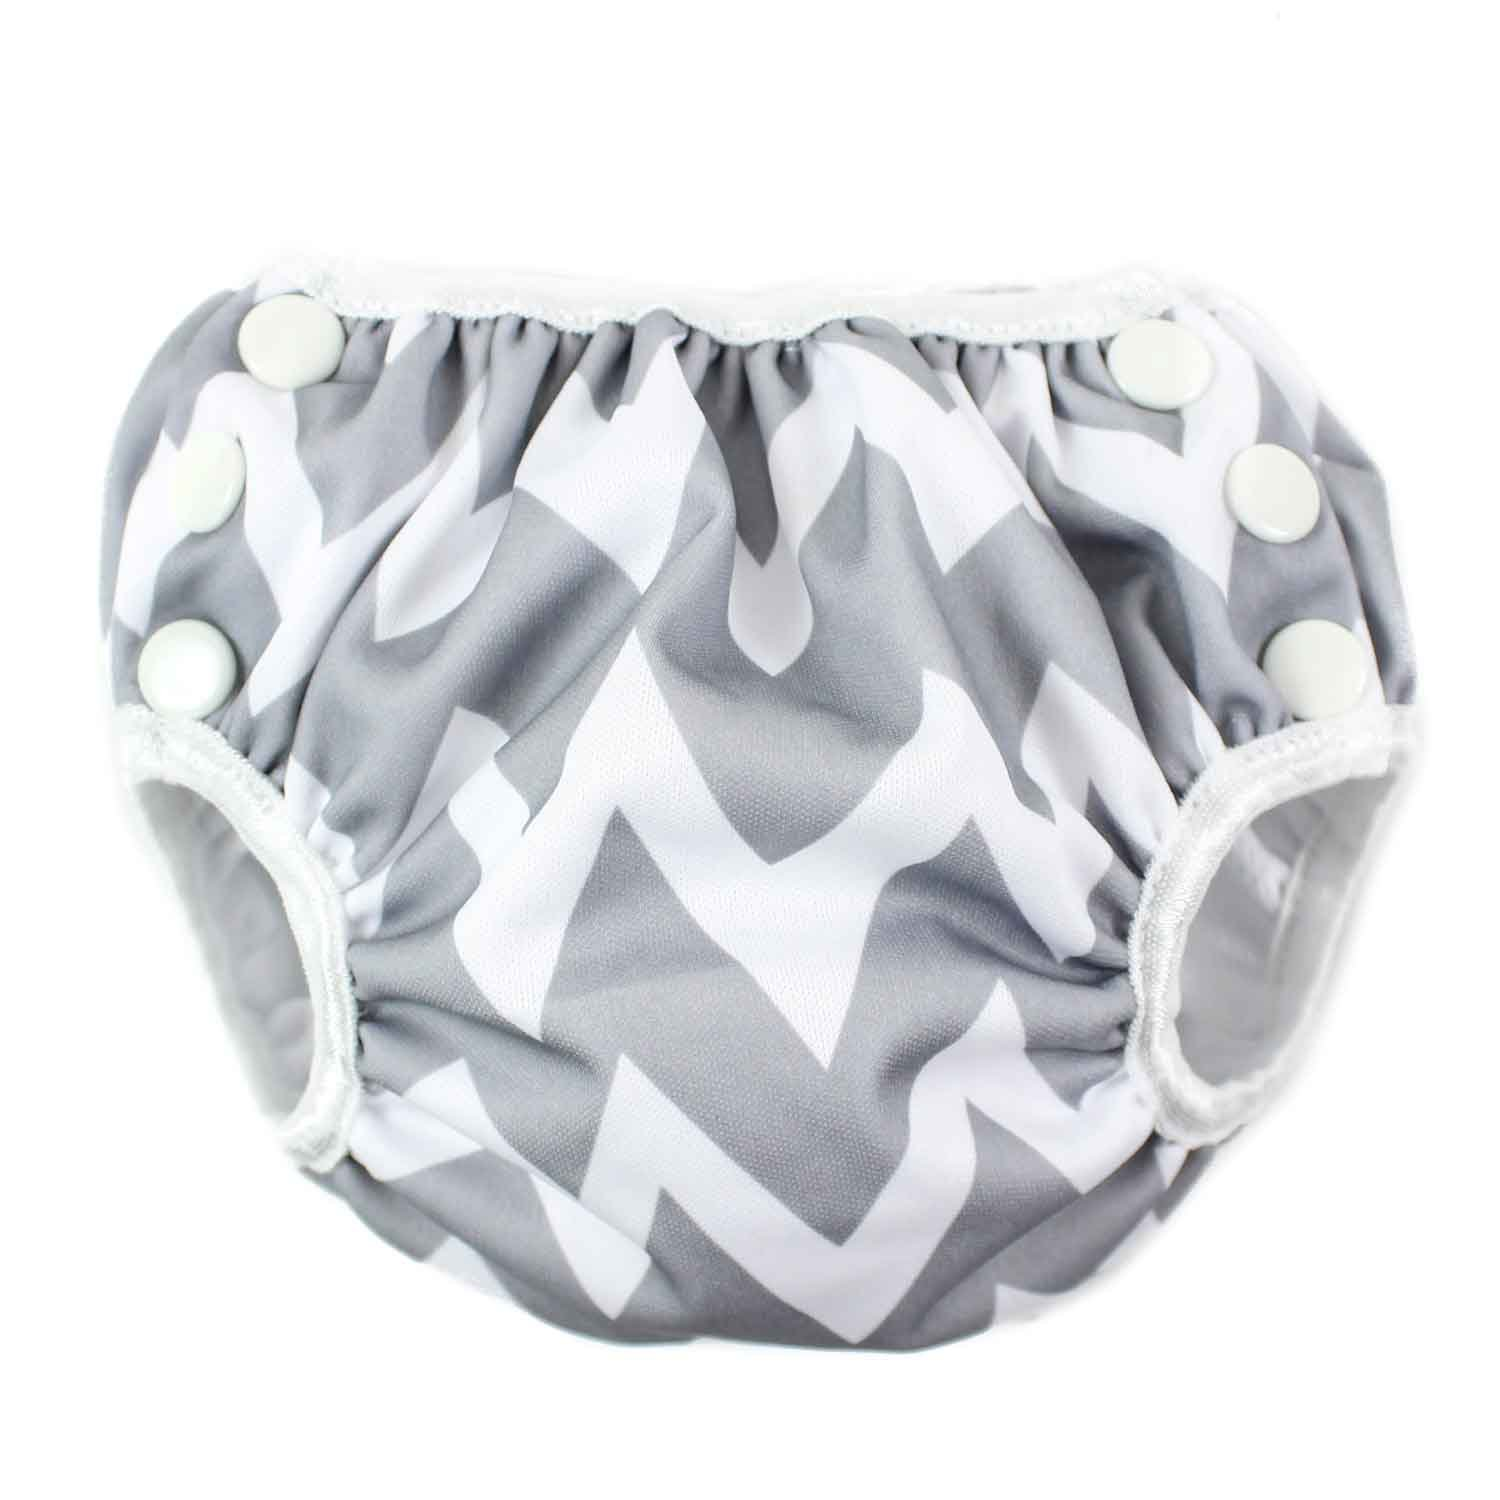 Bumkins Reusable Swim Diaper, Raindrops, Small SD-167-S